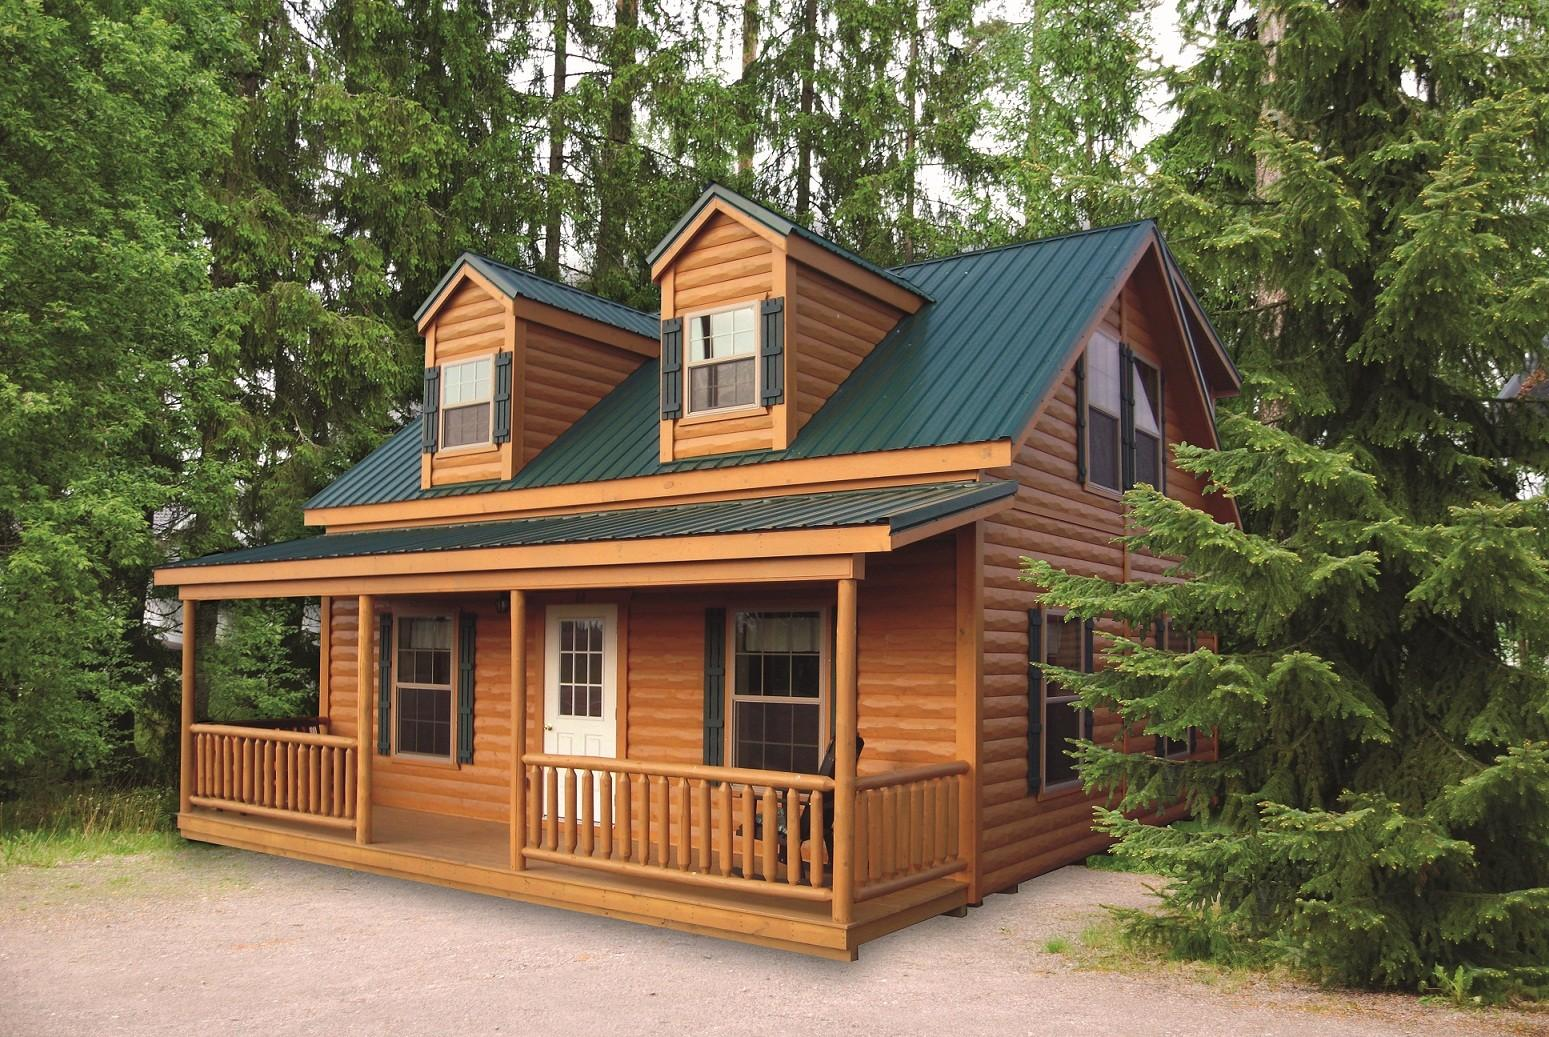 Wood Tex Products Introduces Certified Modular Homes